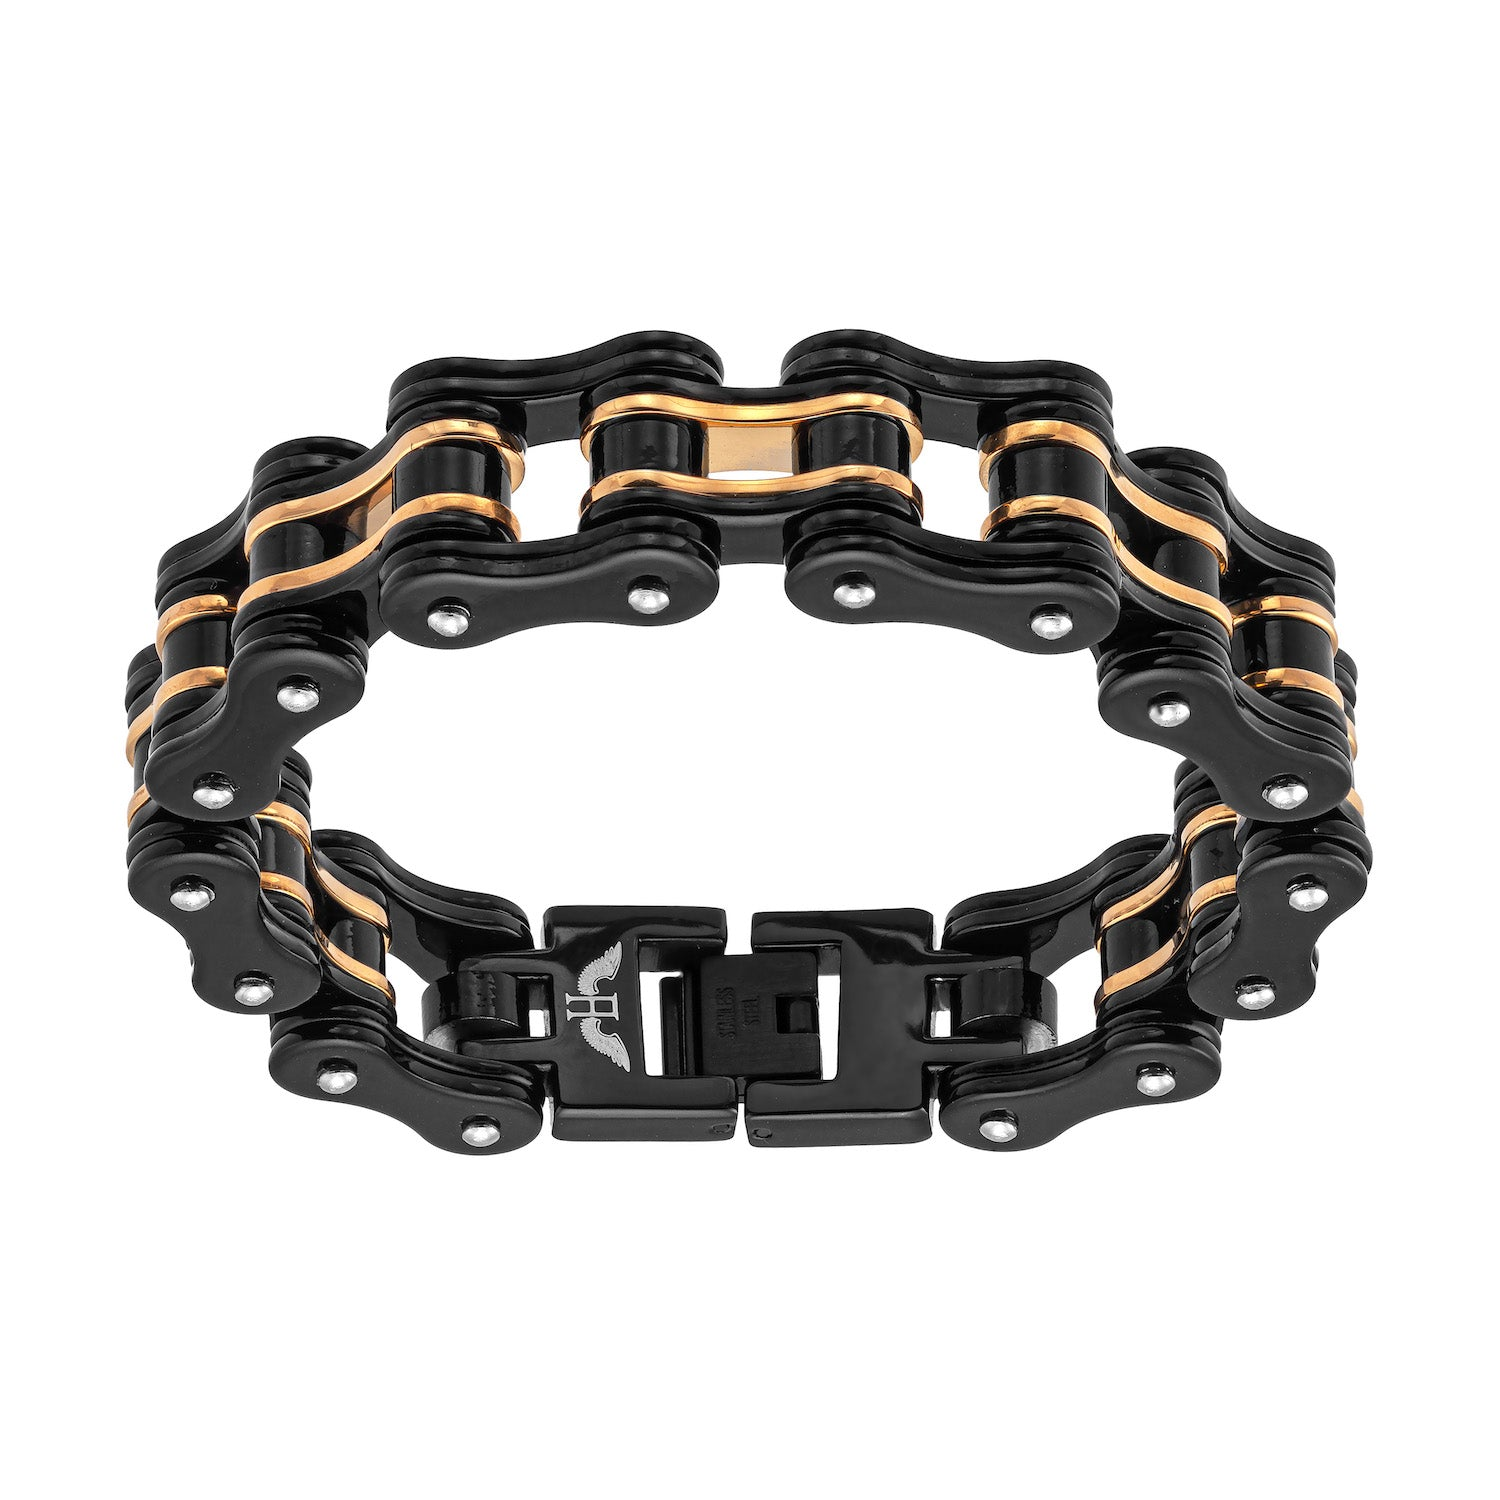 Aeon | Amsterdam Bracelet | Black and Gold Ion Plated Stainless Steel